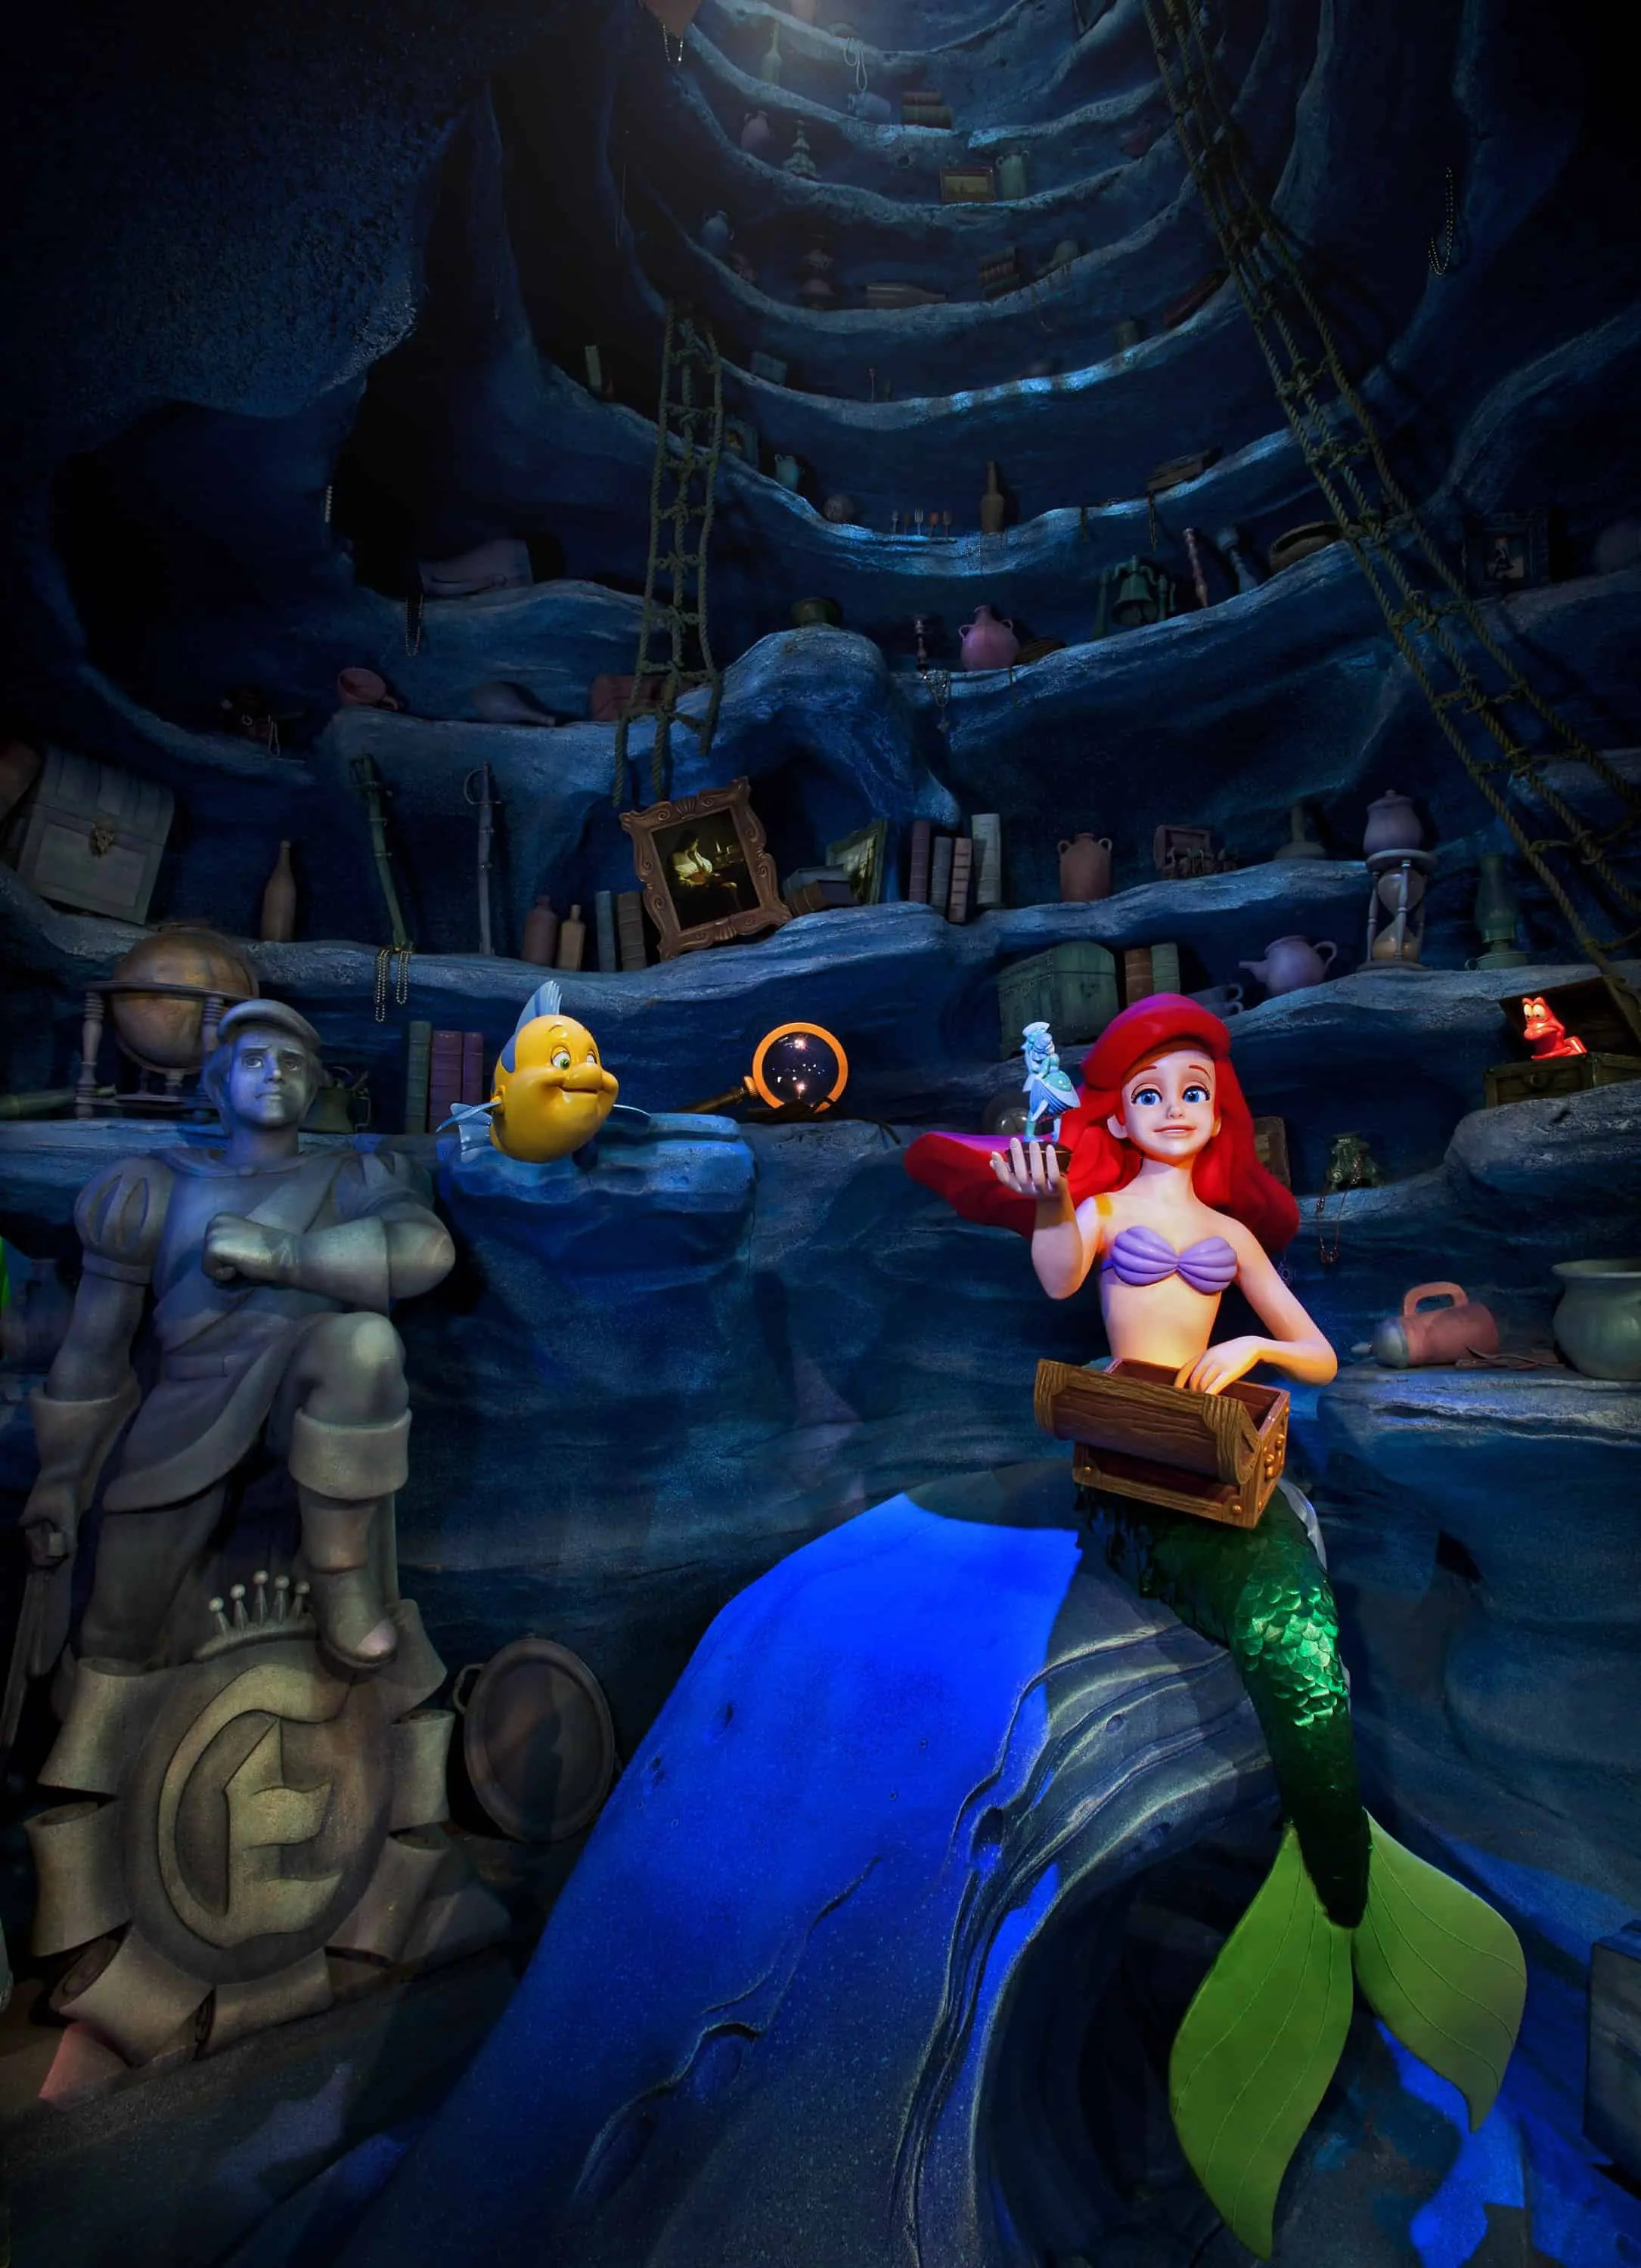 The Little Mermaid ~ ArielÕs Undersea Adventure, Ariel's underwater Grotto scene.